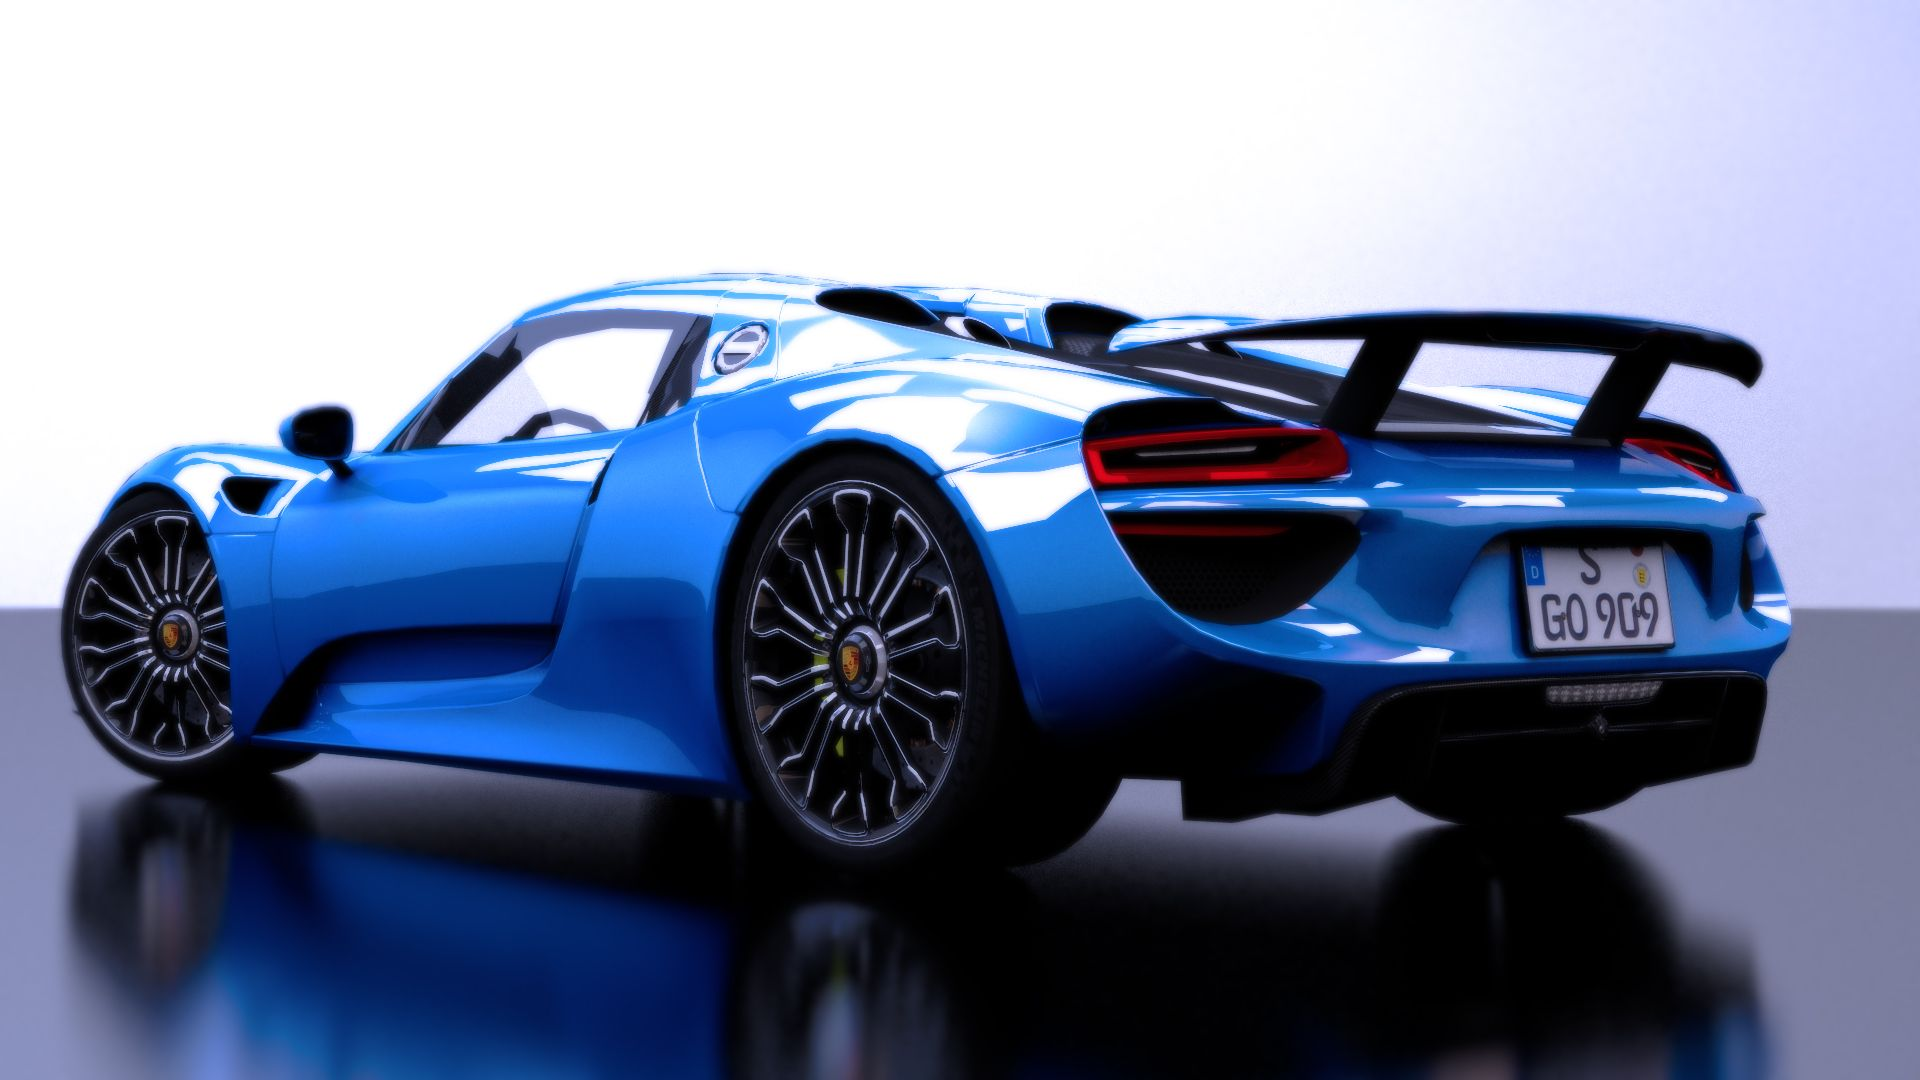 Blue Porsche 918 Spyder Wallpapers Top Free Blue Porsche